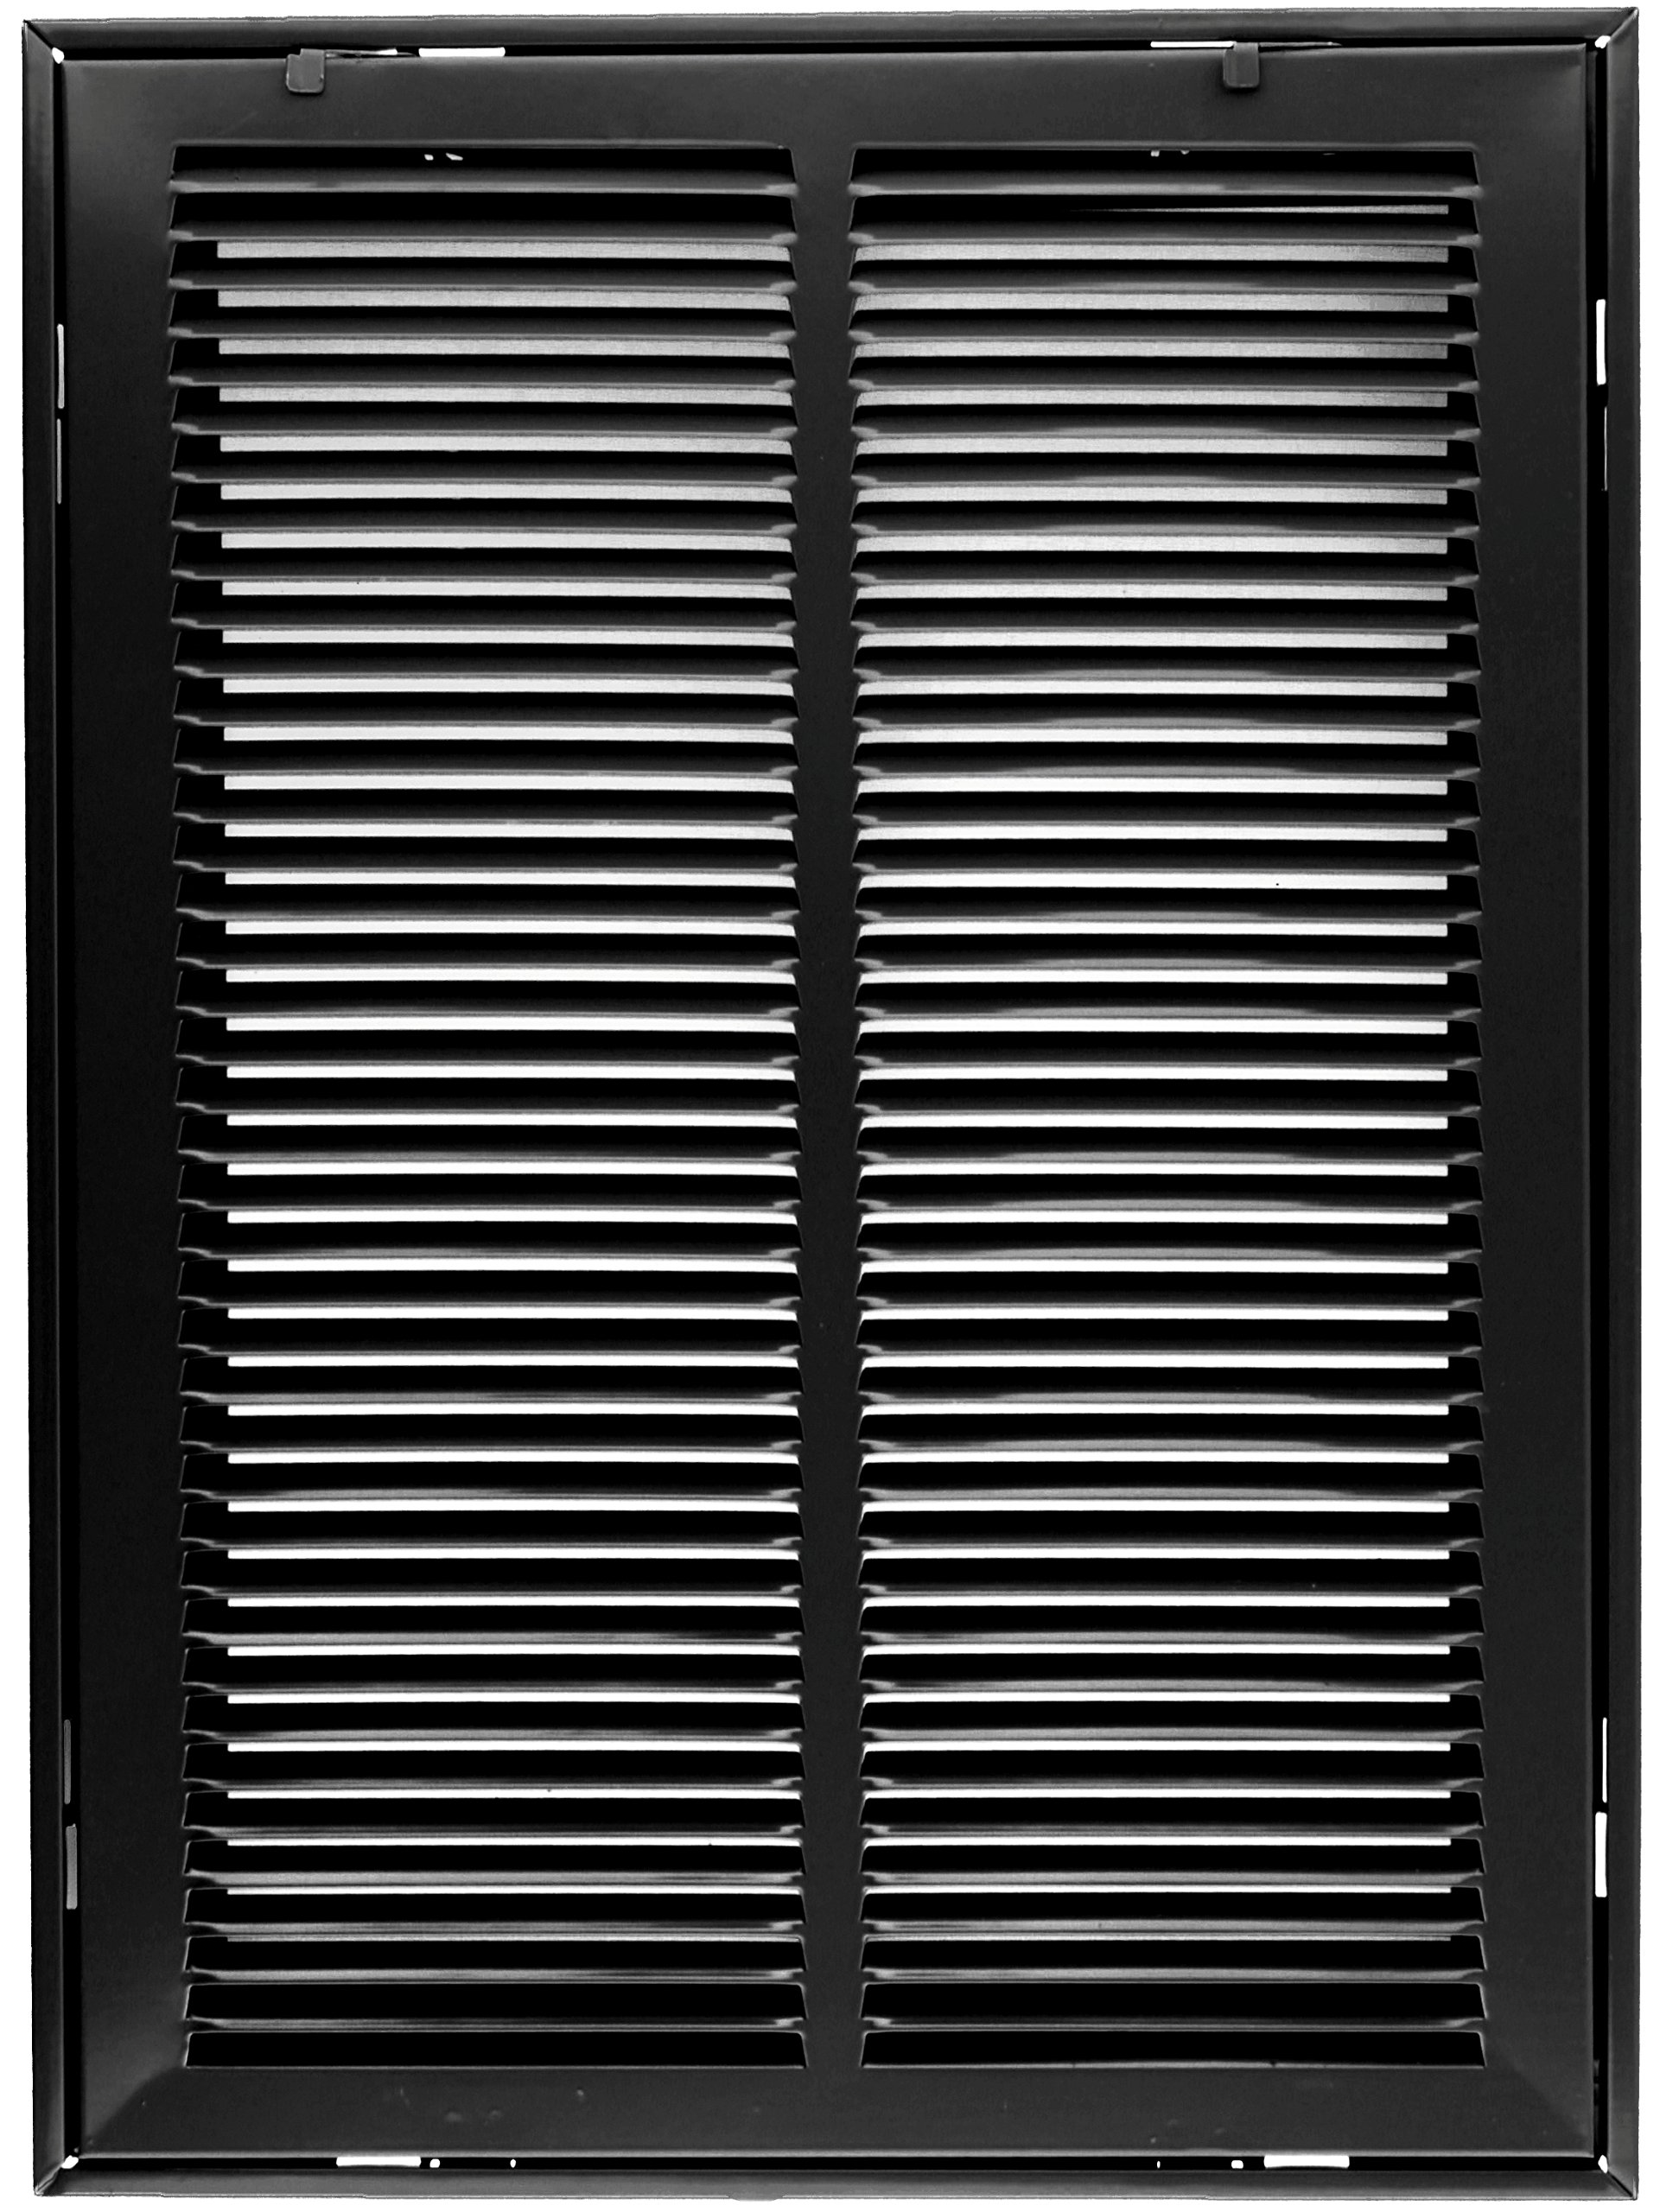 14'' X 30 Steel Return Air Filter Grille for 1'' Filter - Removable Face/Door - HVAC DUCT COVER - Flat Stamped Face - Black [Outer Dimensions: 16.5''w X 32.5''h]